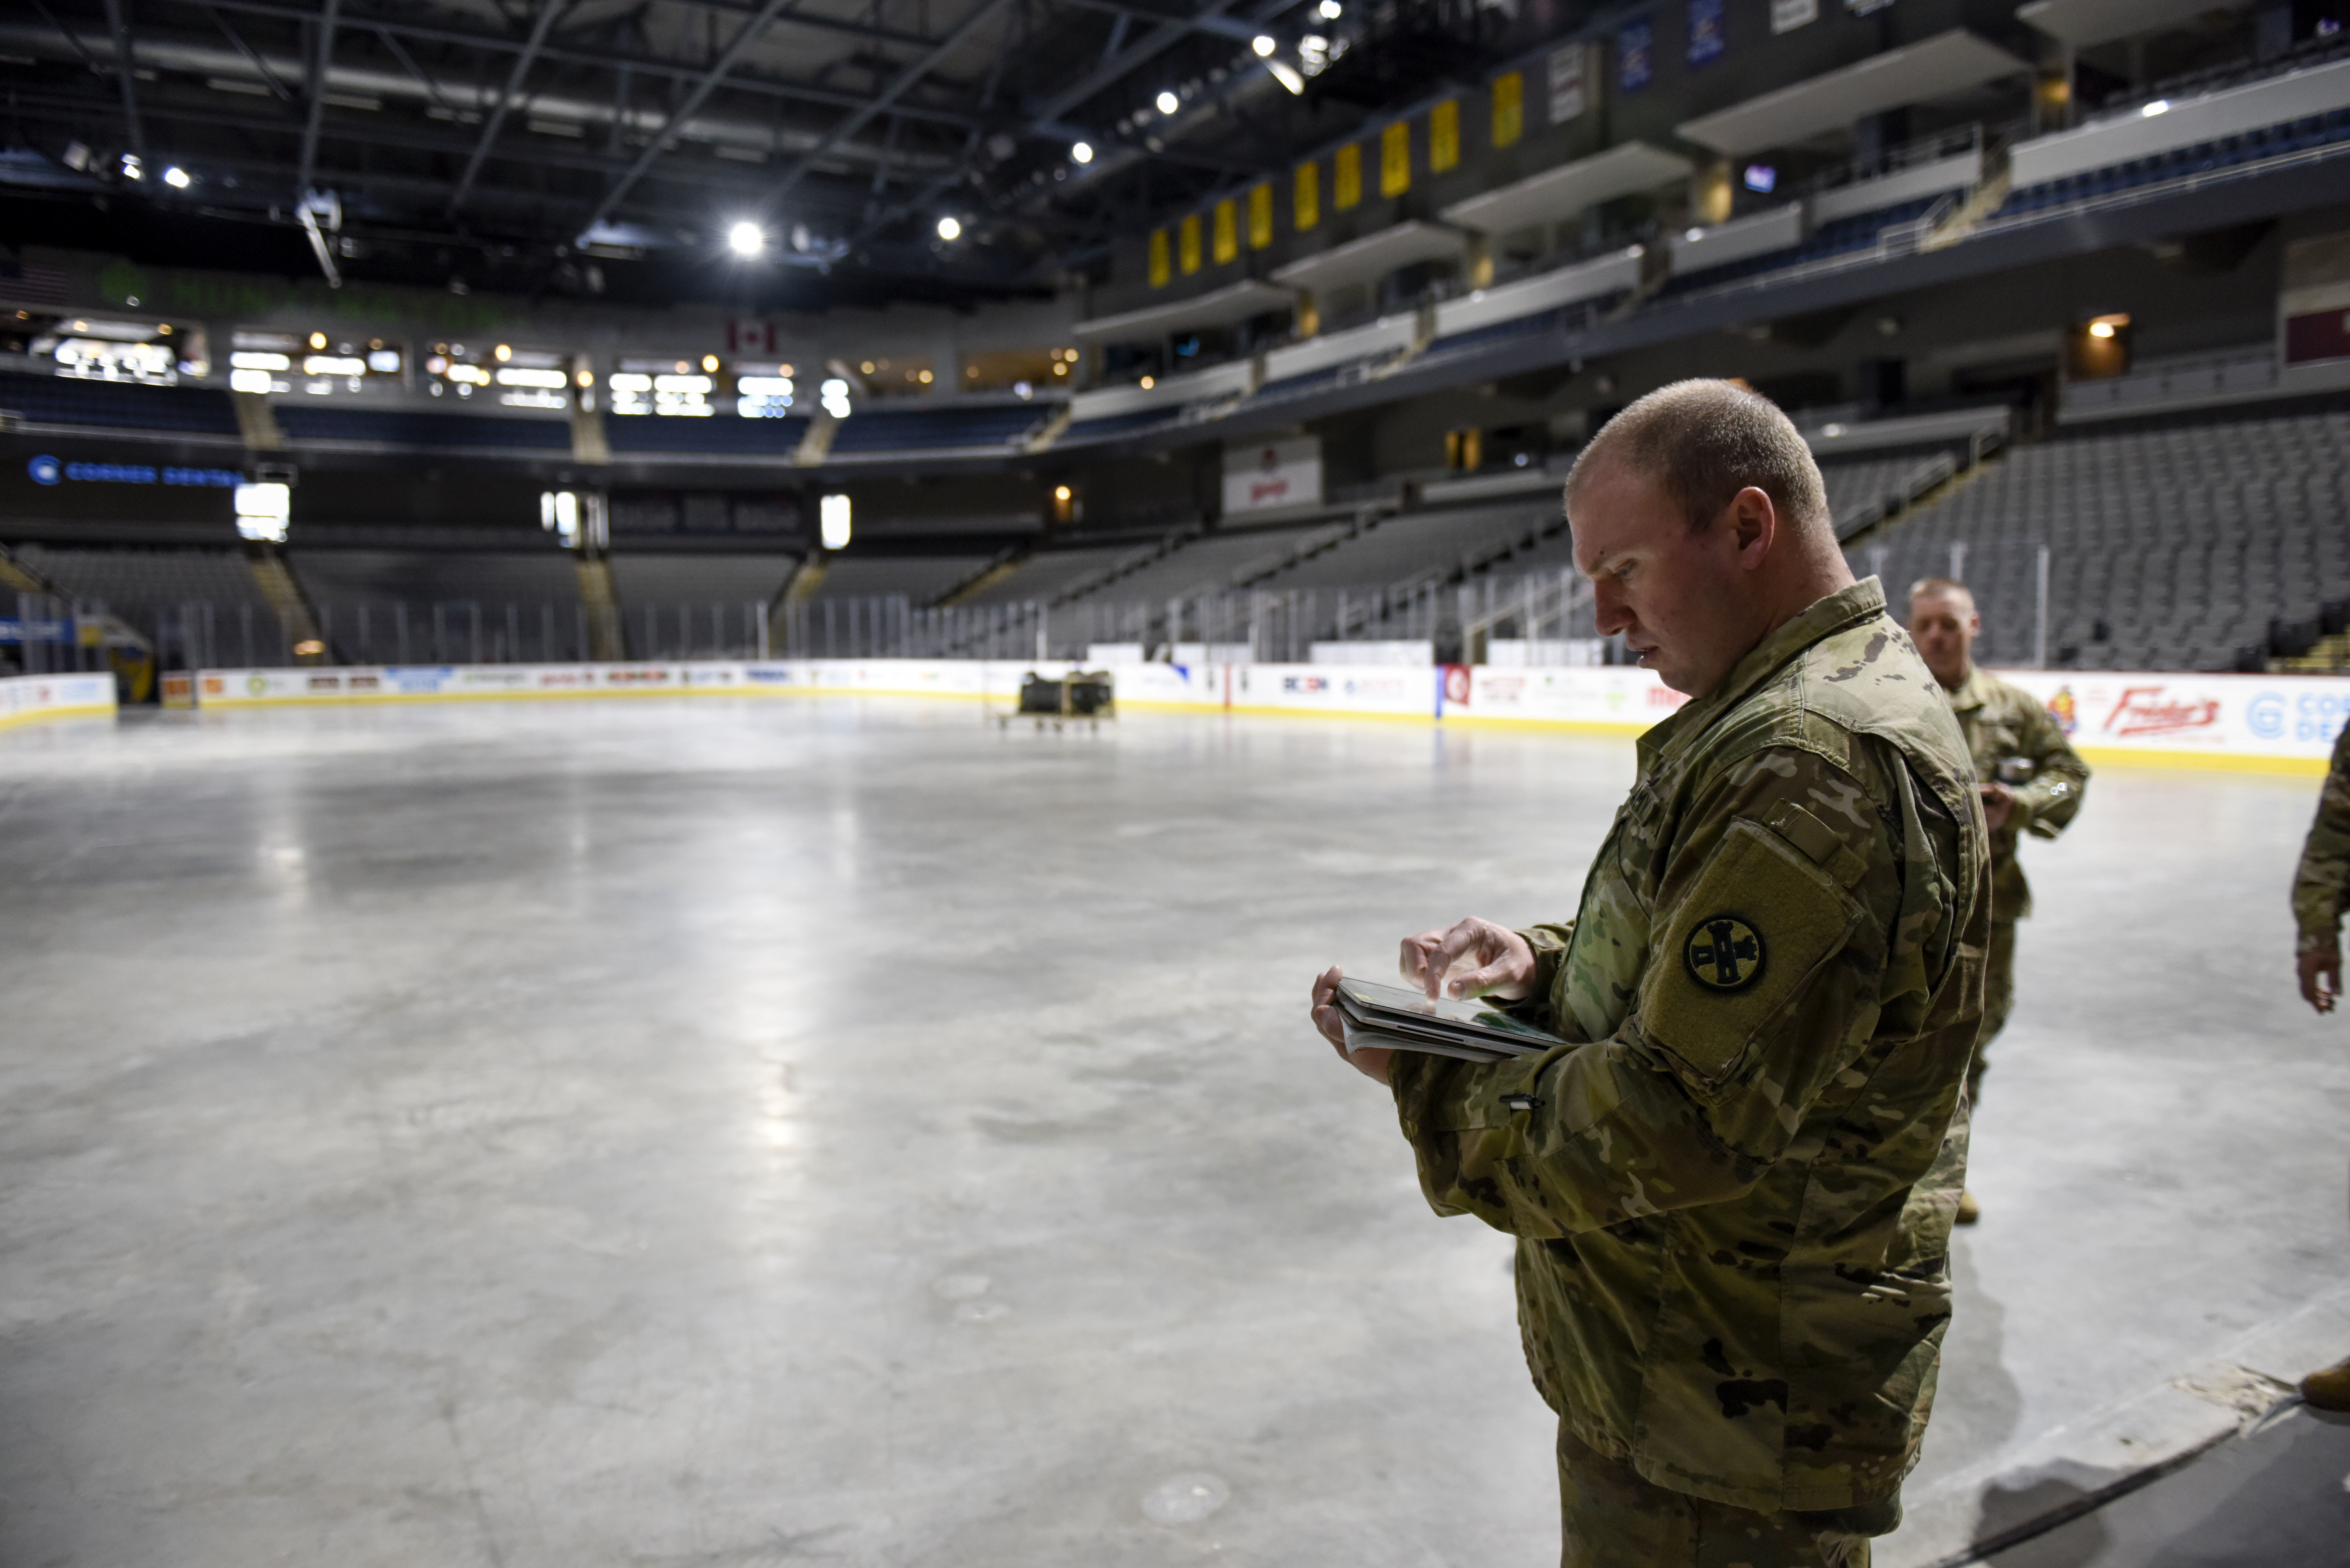 Guard members inputs info on hand-held device in hockey arena.